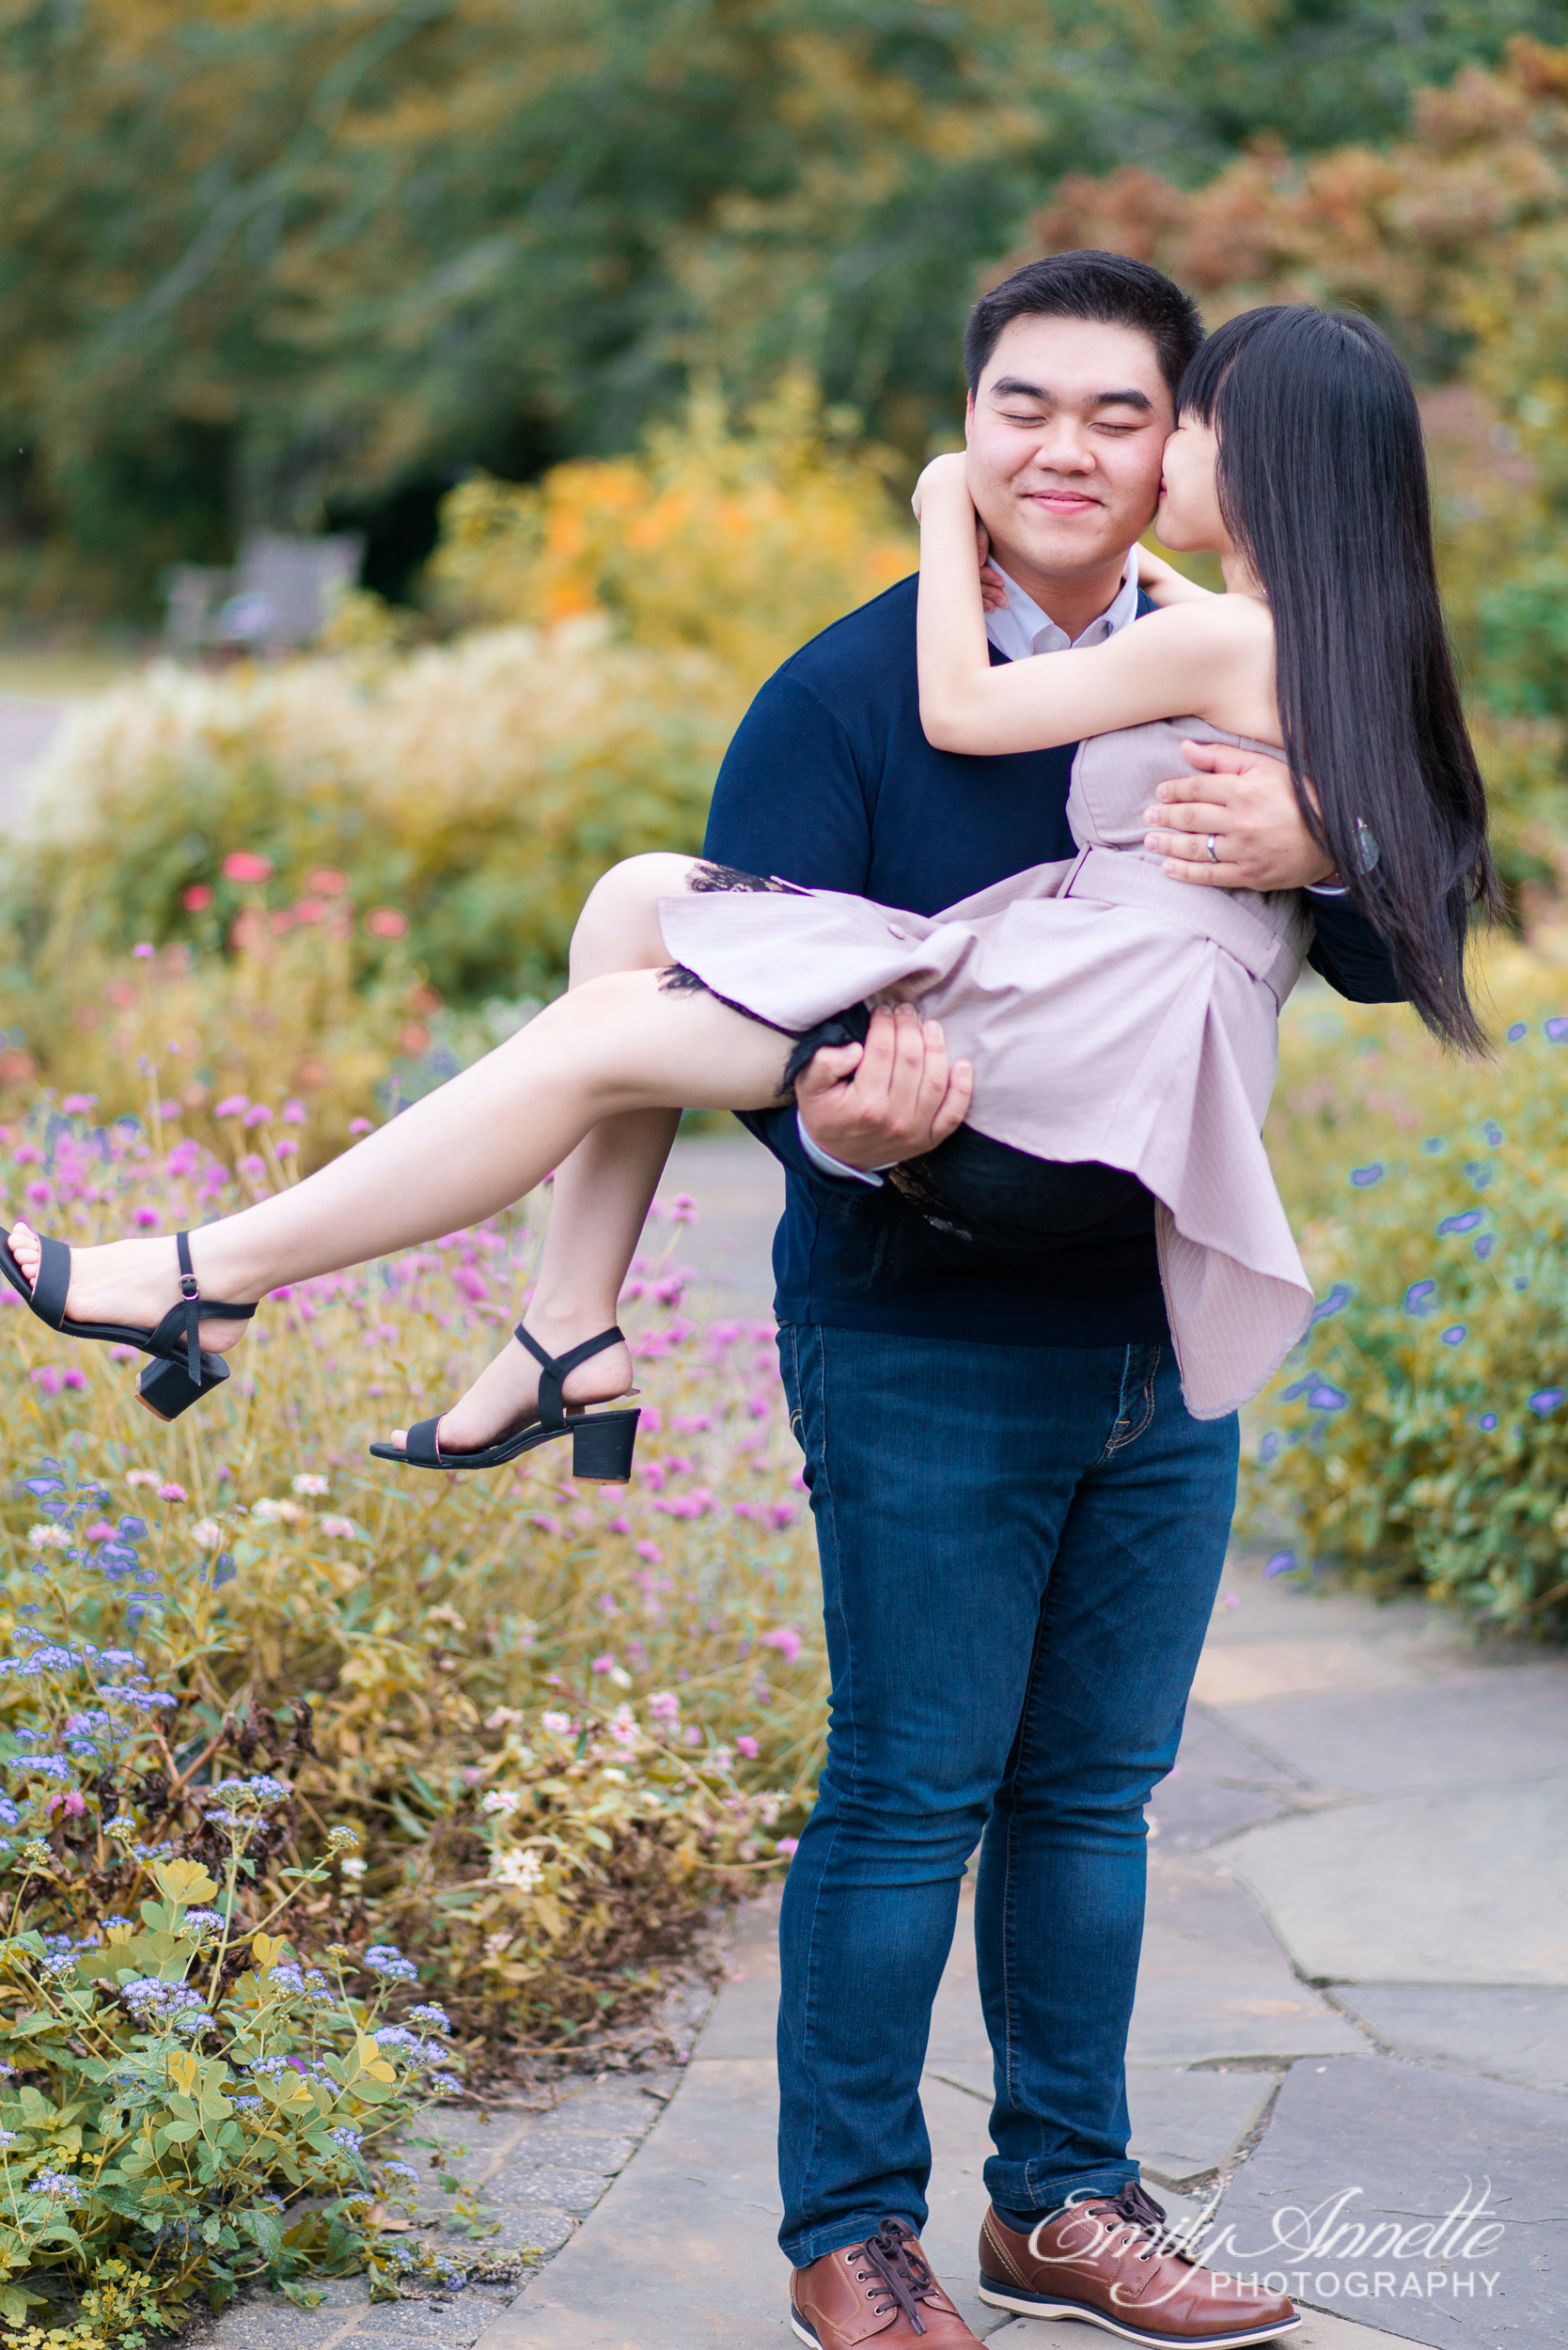 A young man lifts his girlfriend off the ground and carries her as she kisses his cheek in the garden at Green Spring Gardens Park in Fairfax, Virginia